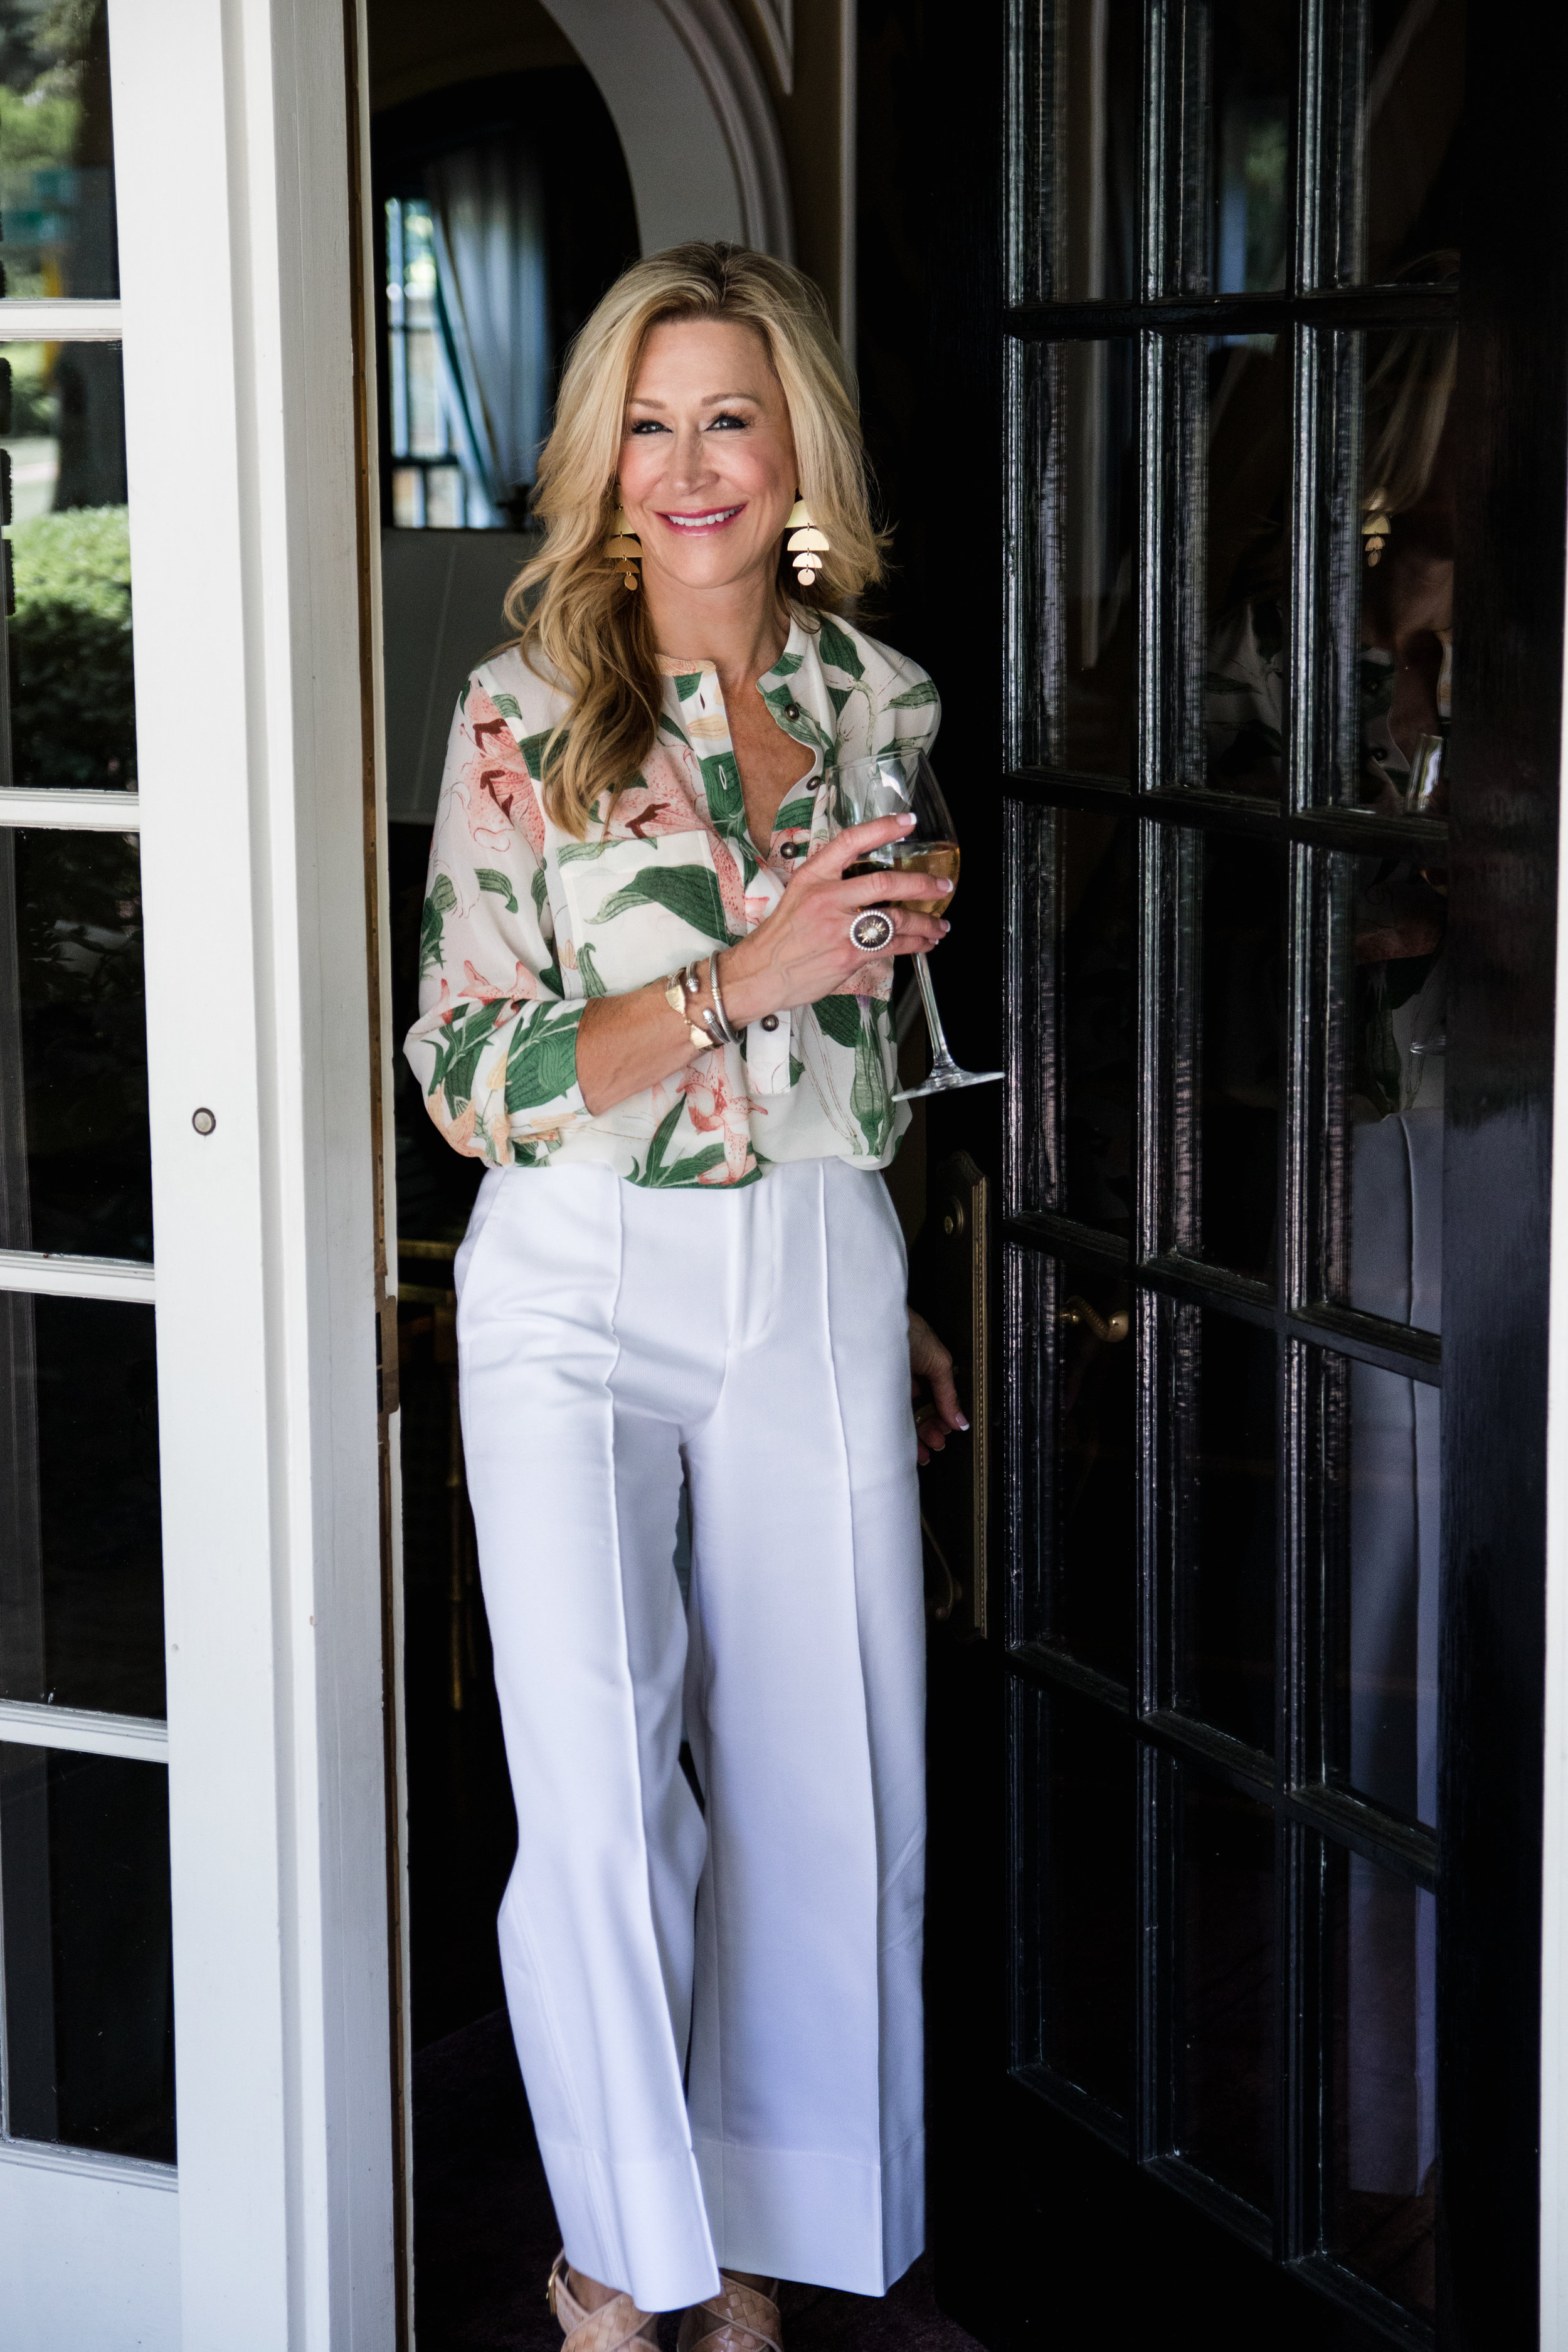 Summer White Pants with a Floral Blouse